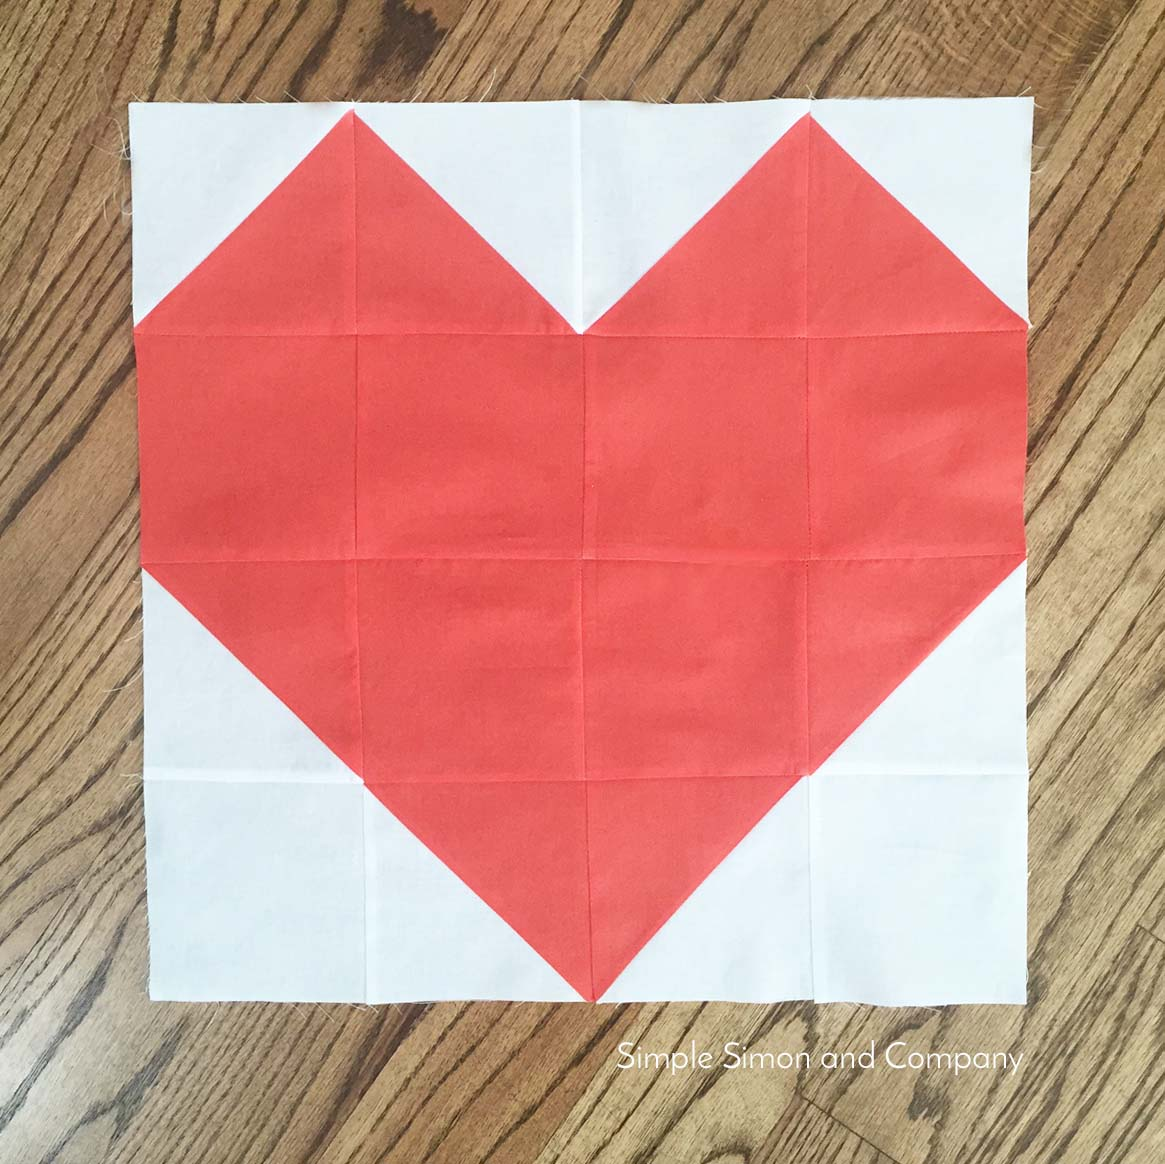 Quilt Block of the Month: Heart Quilt Block - Simple Simon